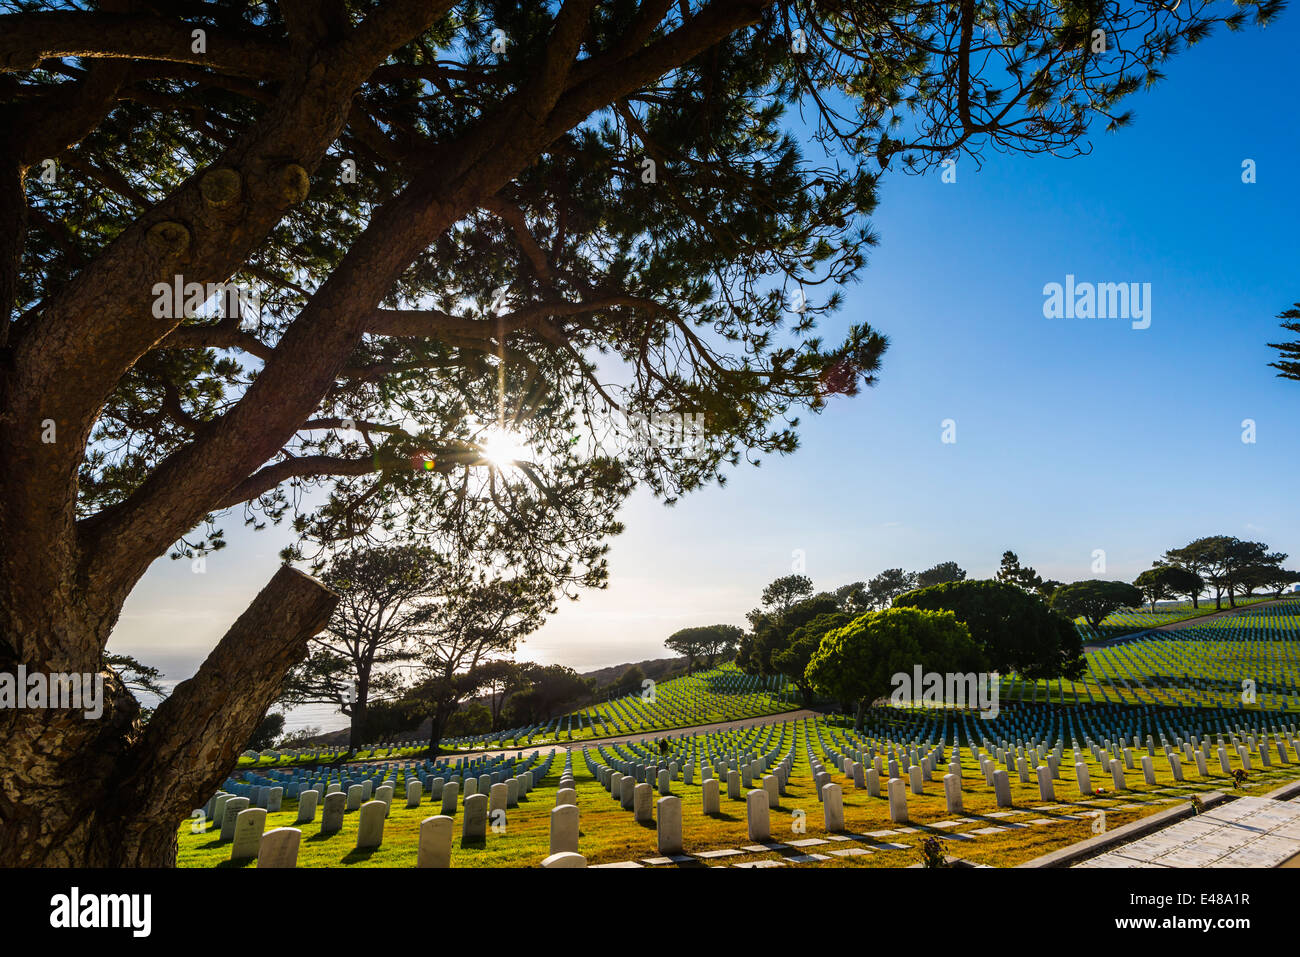 Sunbeams through pine tree branches. Fort Rosecrans National Cemetery,  San Diego, California, United States. - Stock Image